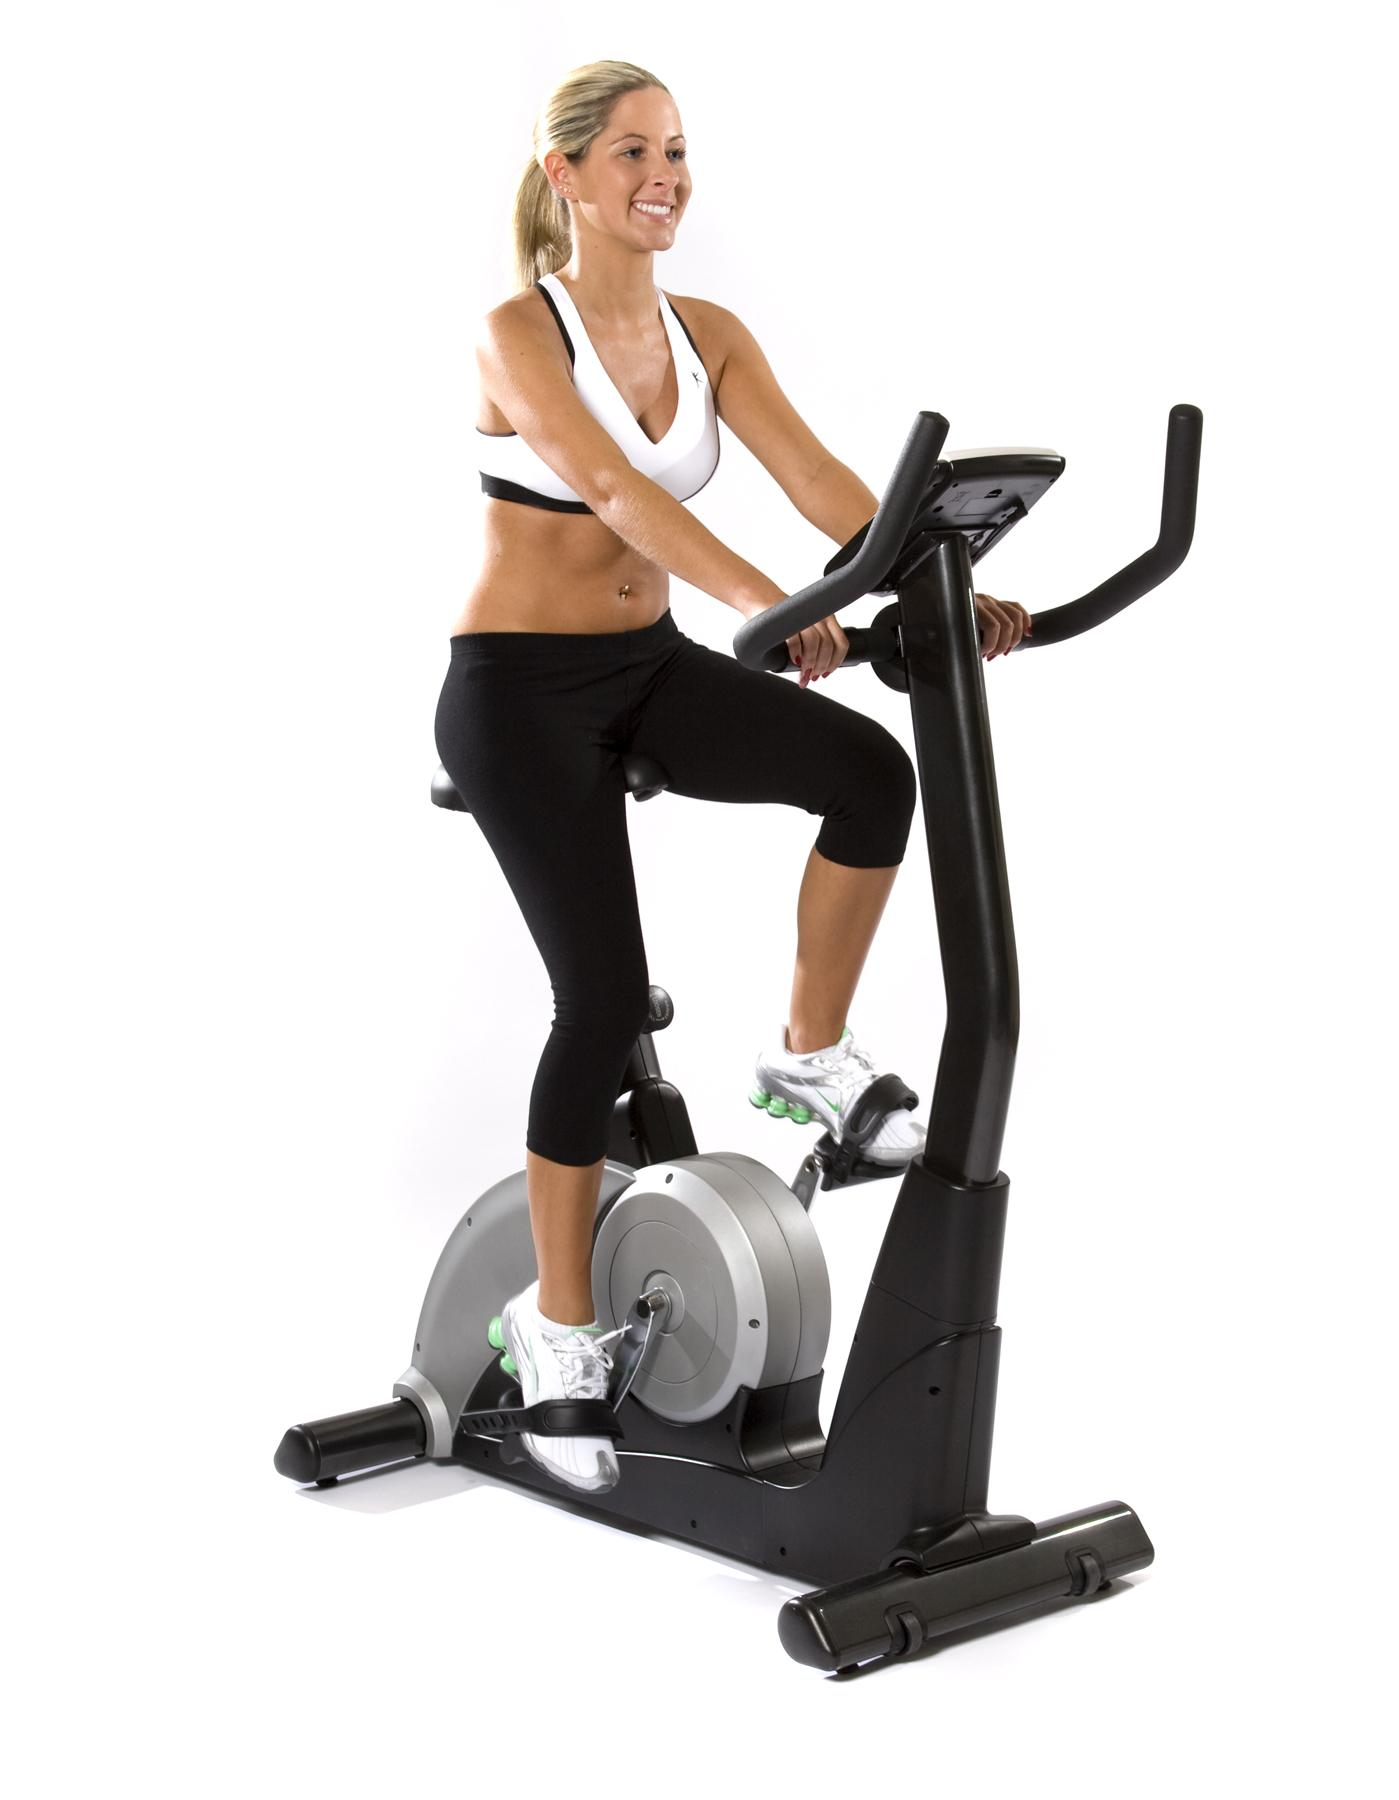 Getting the best cardio equipment for your garage gym